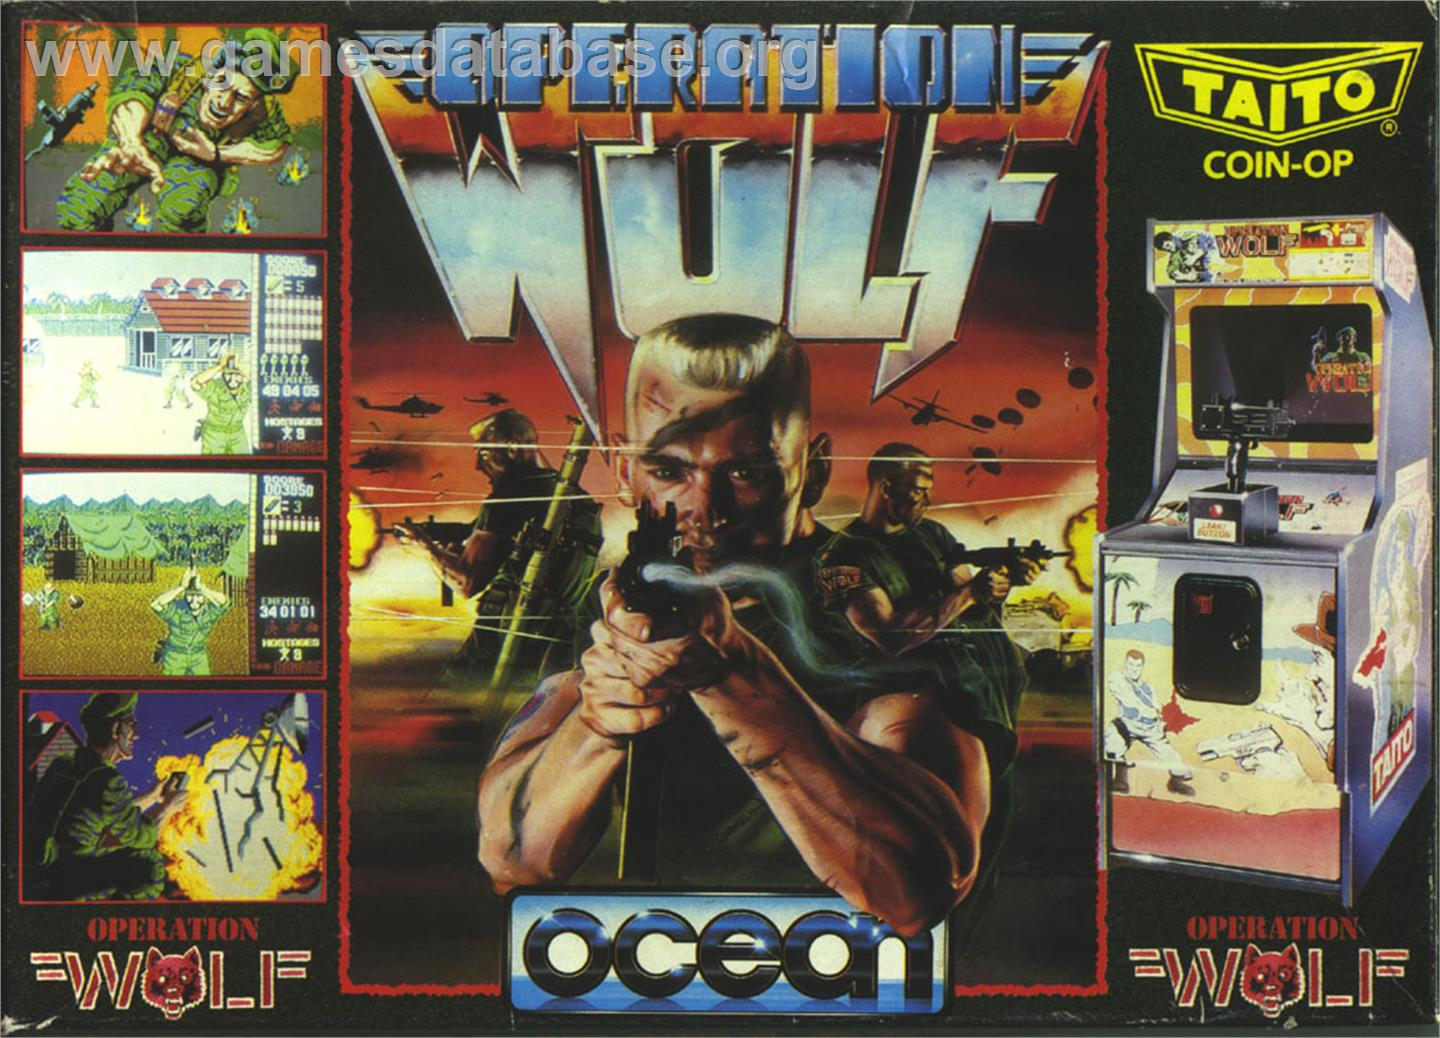 operation thunderbolt operation wolf 3 arcade operation tiger arcade